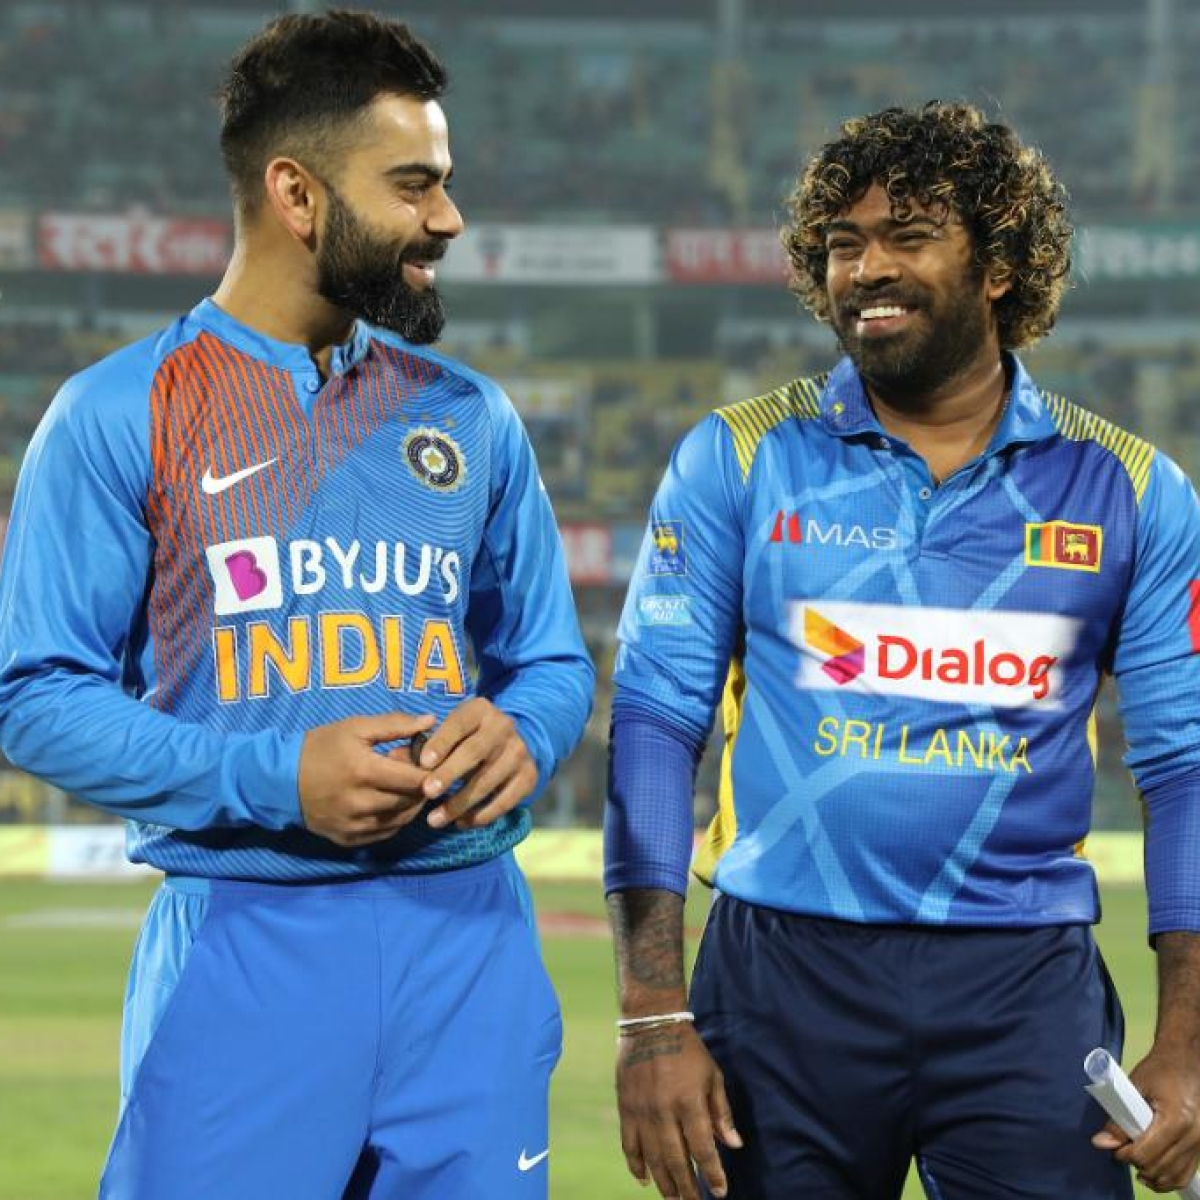 Ind vs SL 3rd T20I: In a clash of captains, will Kohli outsmart Malinga once again?